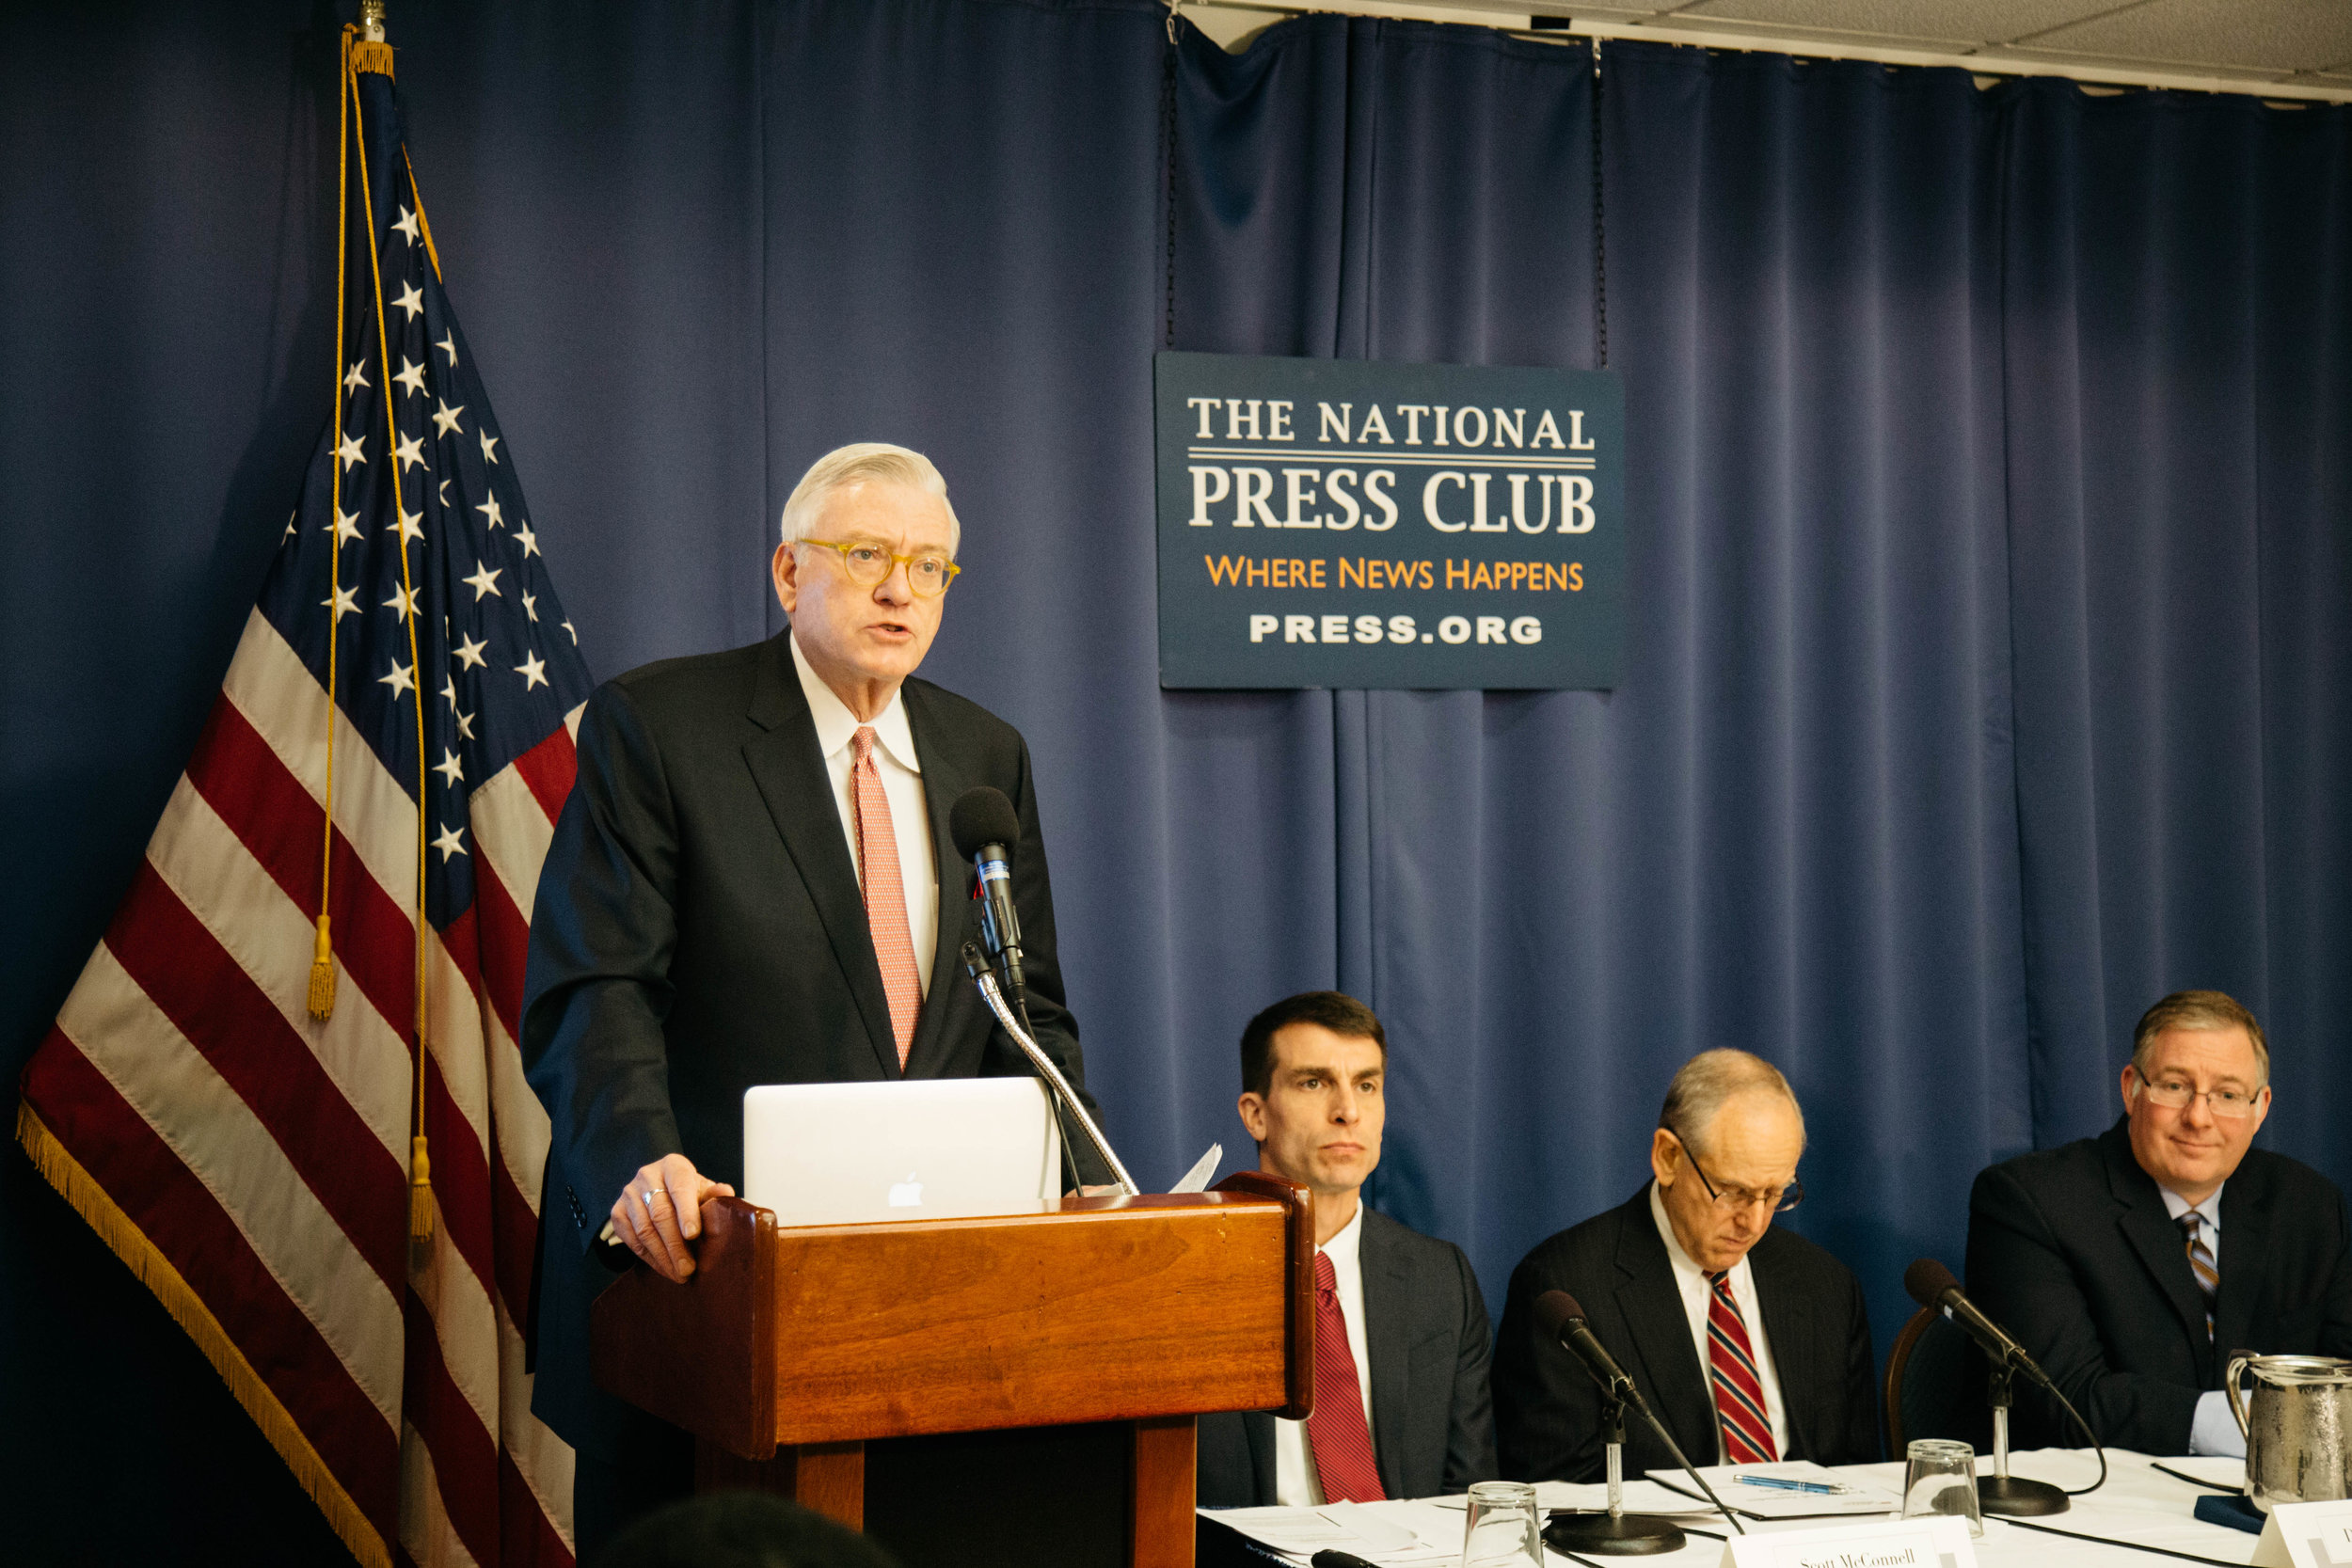 A. Larry Ross, president of A. Larry Ross Communications, opens a press conference on Dec. 4, 2018, at the National Press Club in Washington, D.C., to announce the findings of a new study conducted by LifeWay Research and sponsored by Chosen People Ministries and New York Times bestselling author Joel C. Rosenberg, that sheds light on Evangelicals' changing attitudes toward Israel and their effect on the Church's support of Israel, as Scott McConnell, executive director of LifeWay Research, Dr. Mitch Glaser, president of Chosen People Ministries, and Rosenberg prepare to discuss the findings.